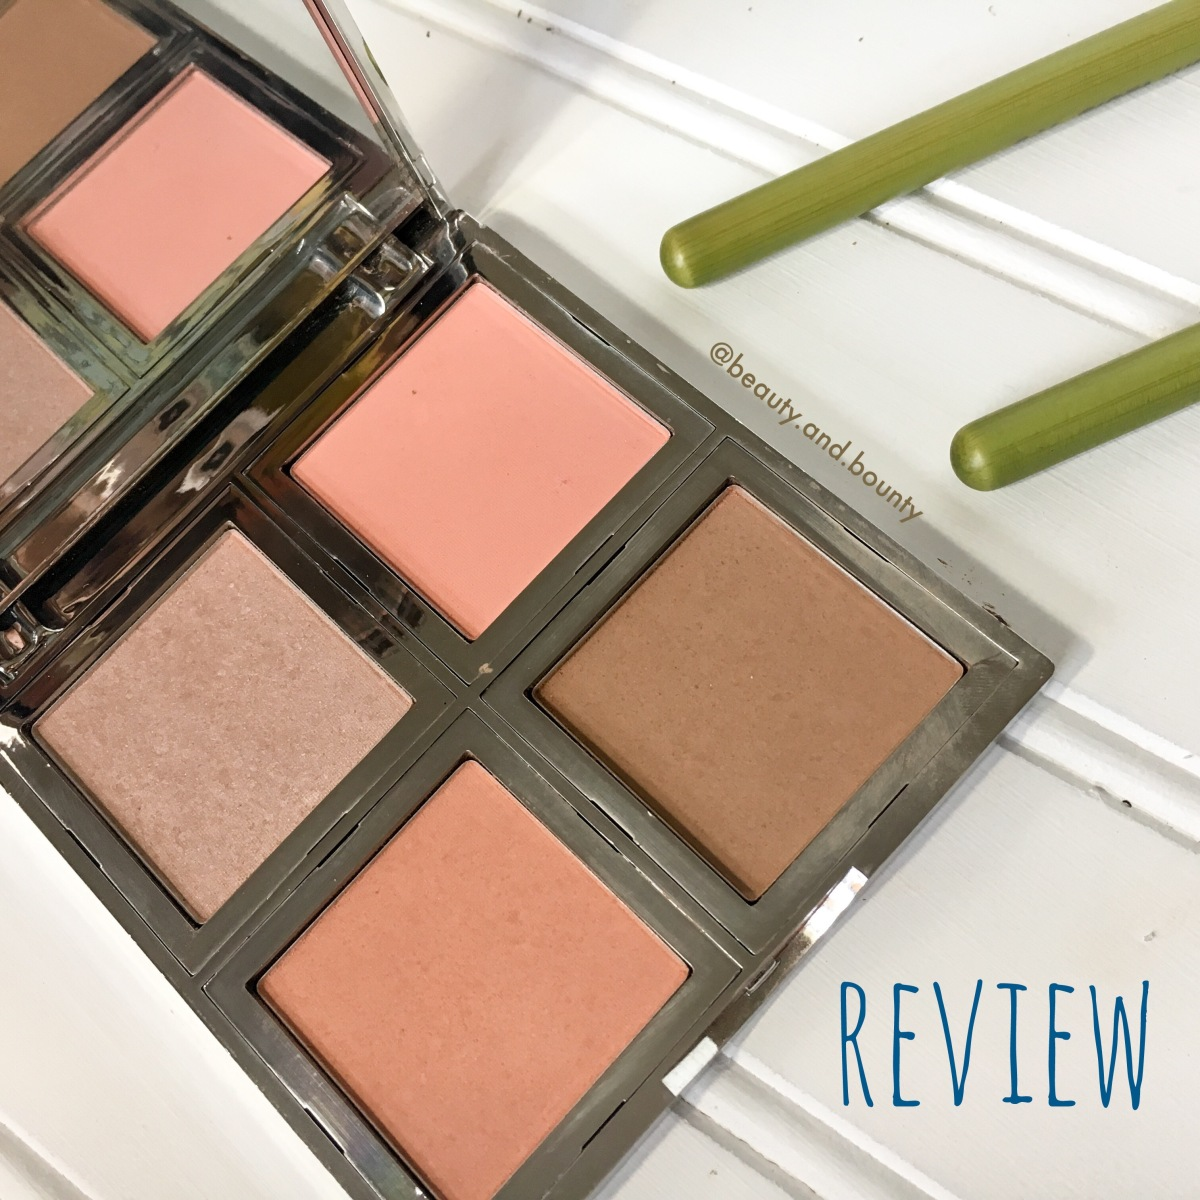 e.l.f. Beautifully Bare Natural Glow Face Palette – Review